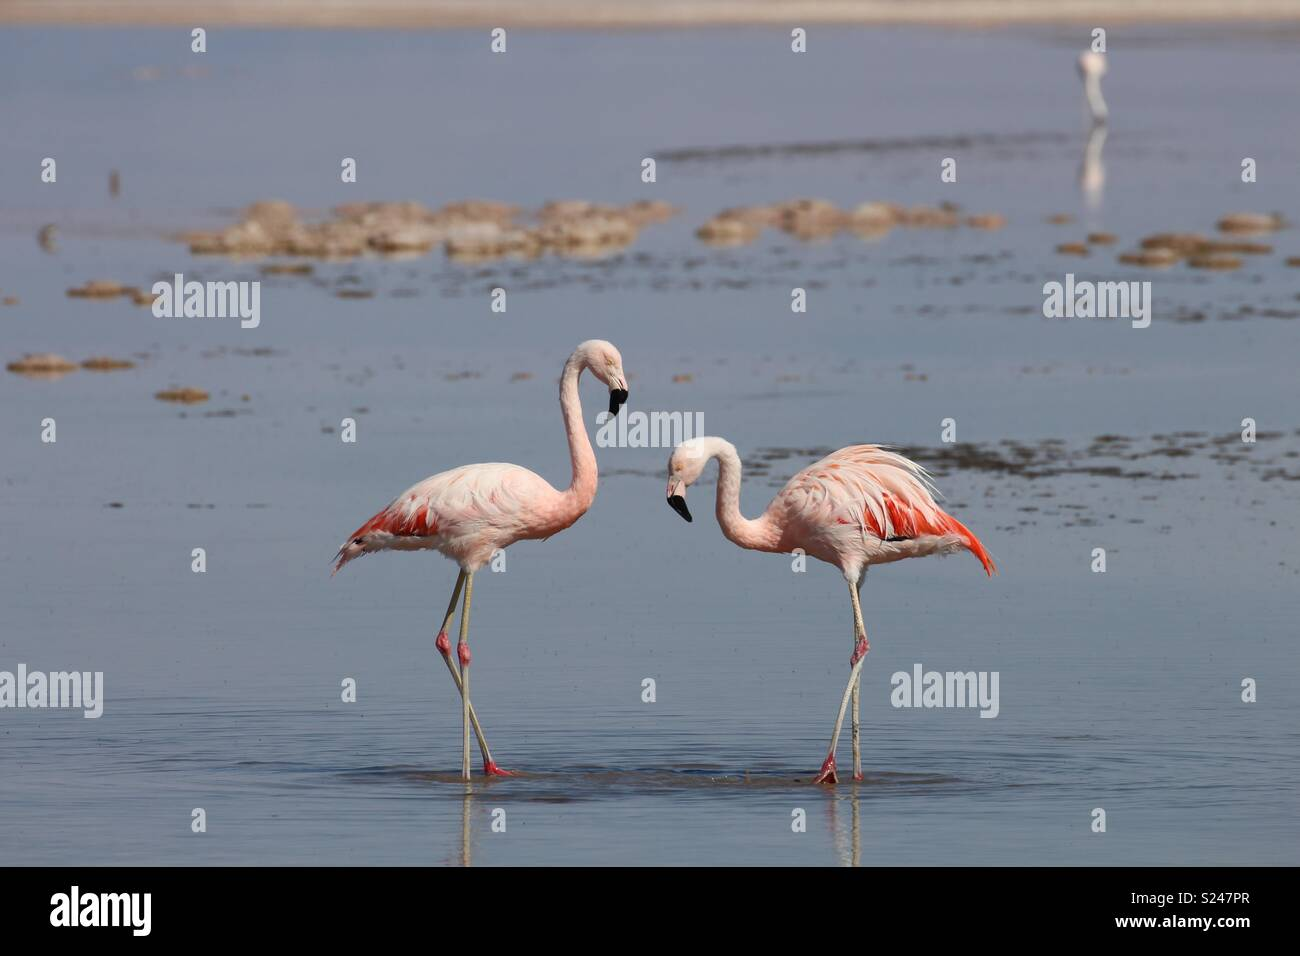 Flamingoes in Réserva National Los Flamencos - Stock Image